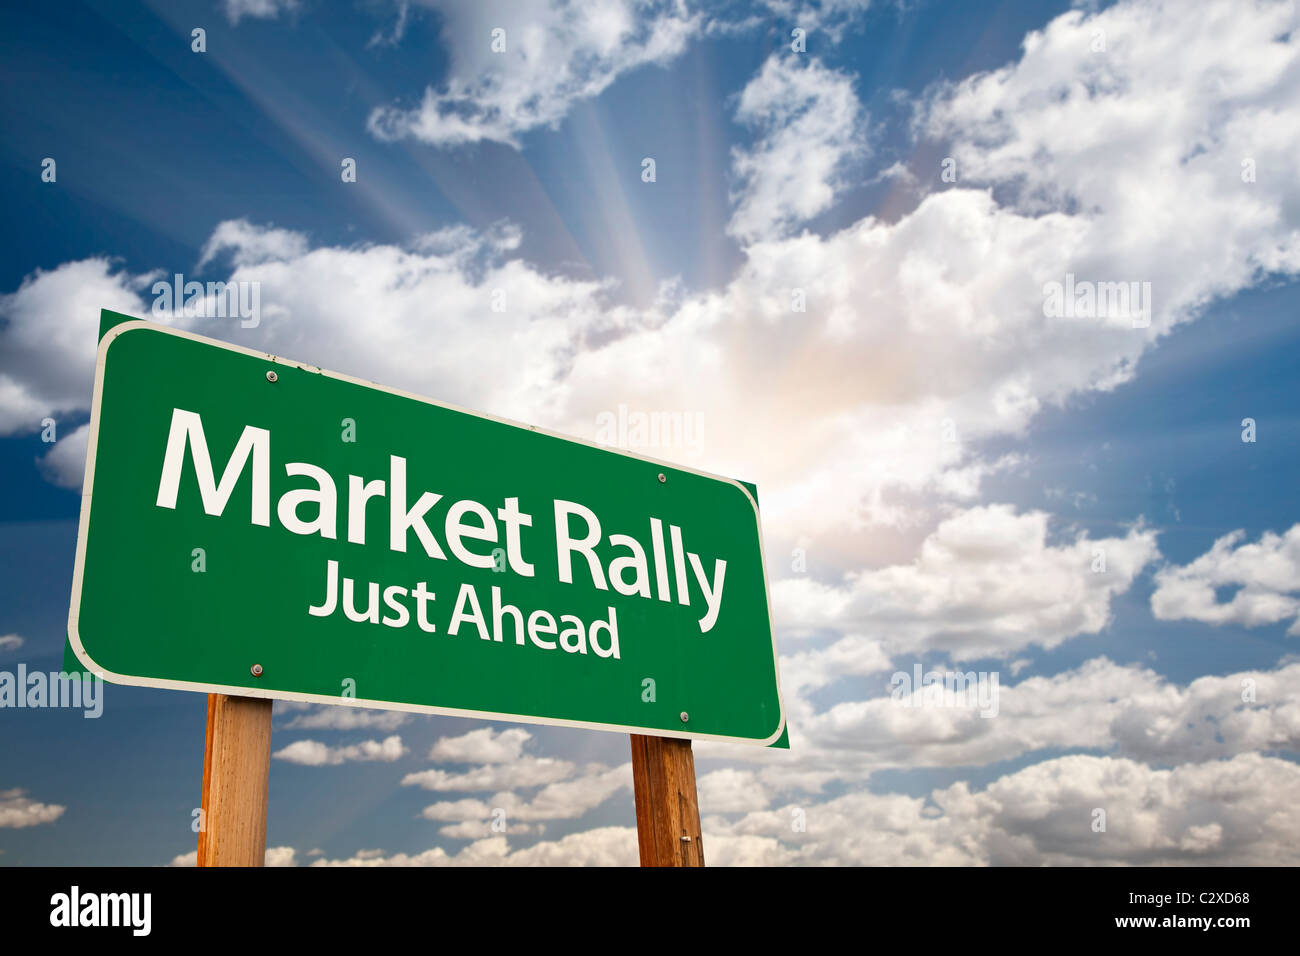 Market Rally Green Road Sign with Dramatic Clouds, Sun Rays and Sky. - Stock Image